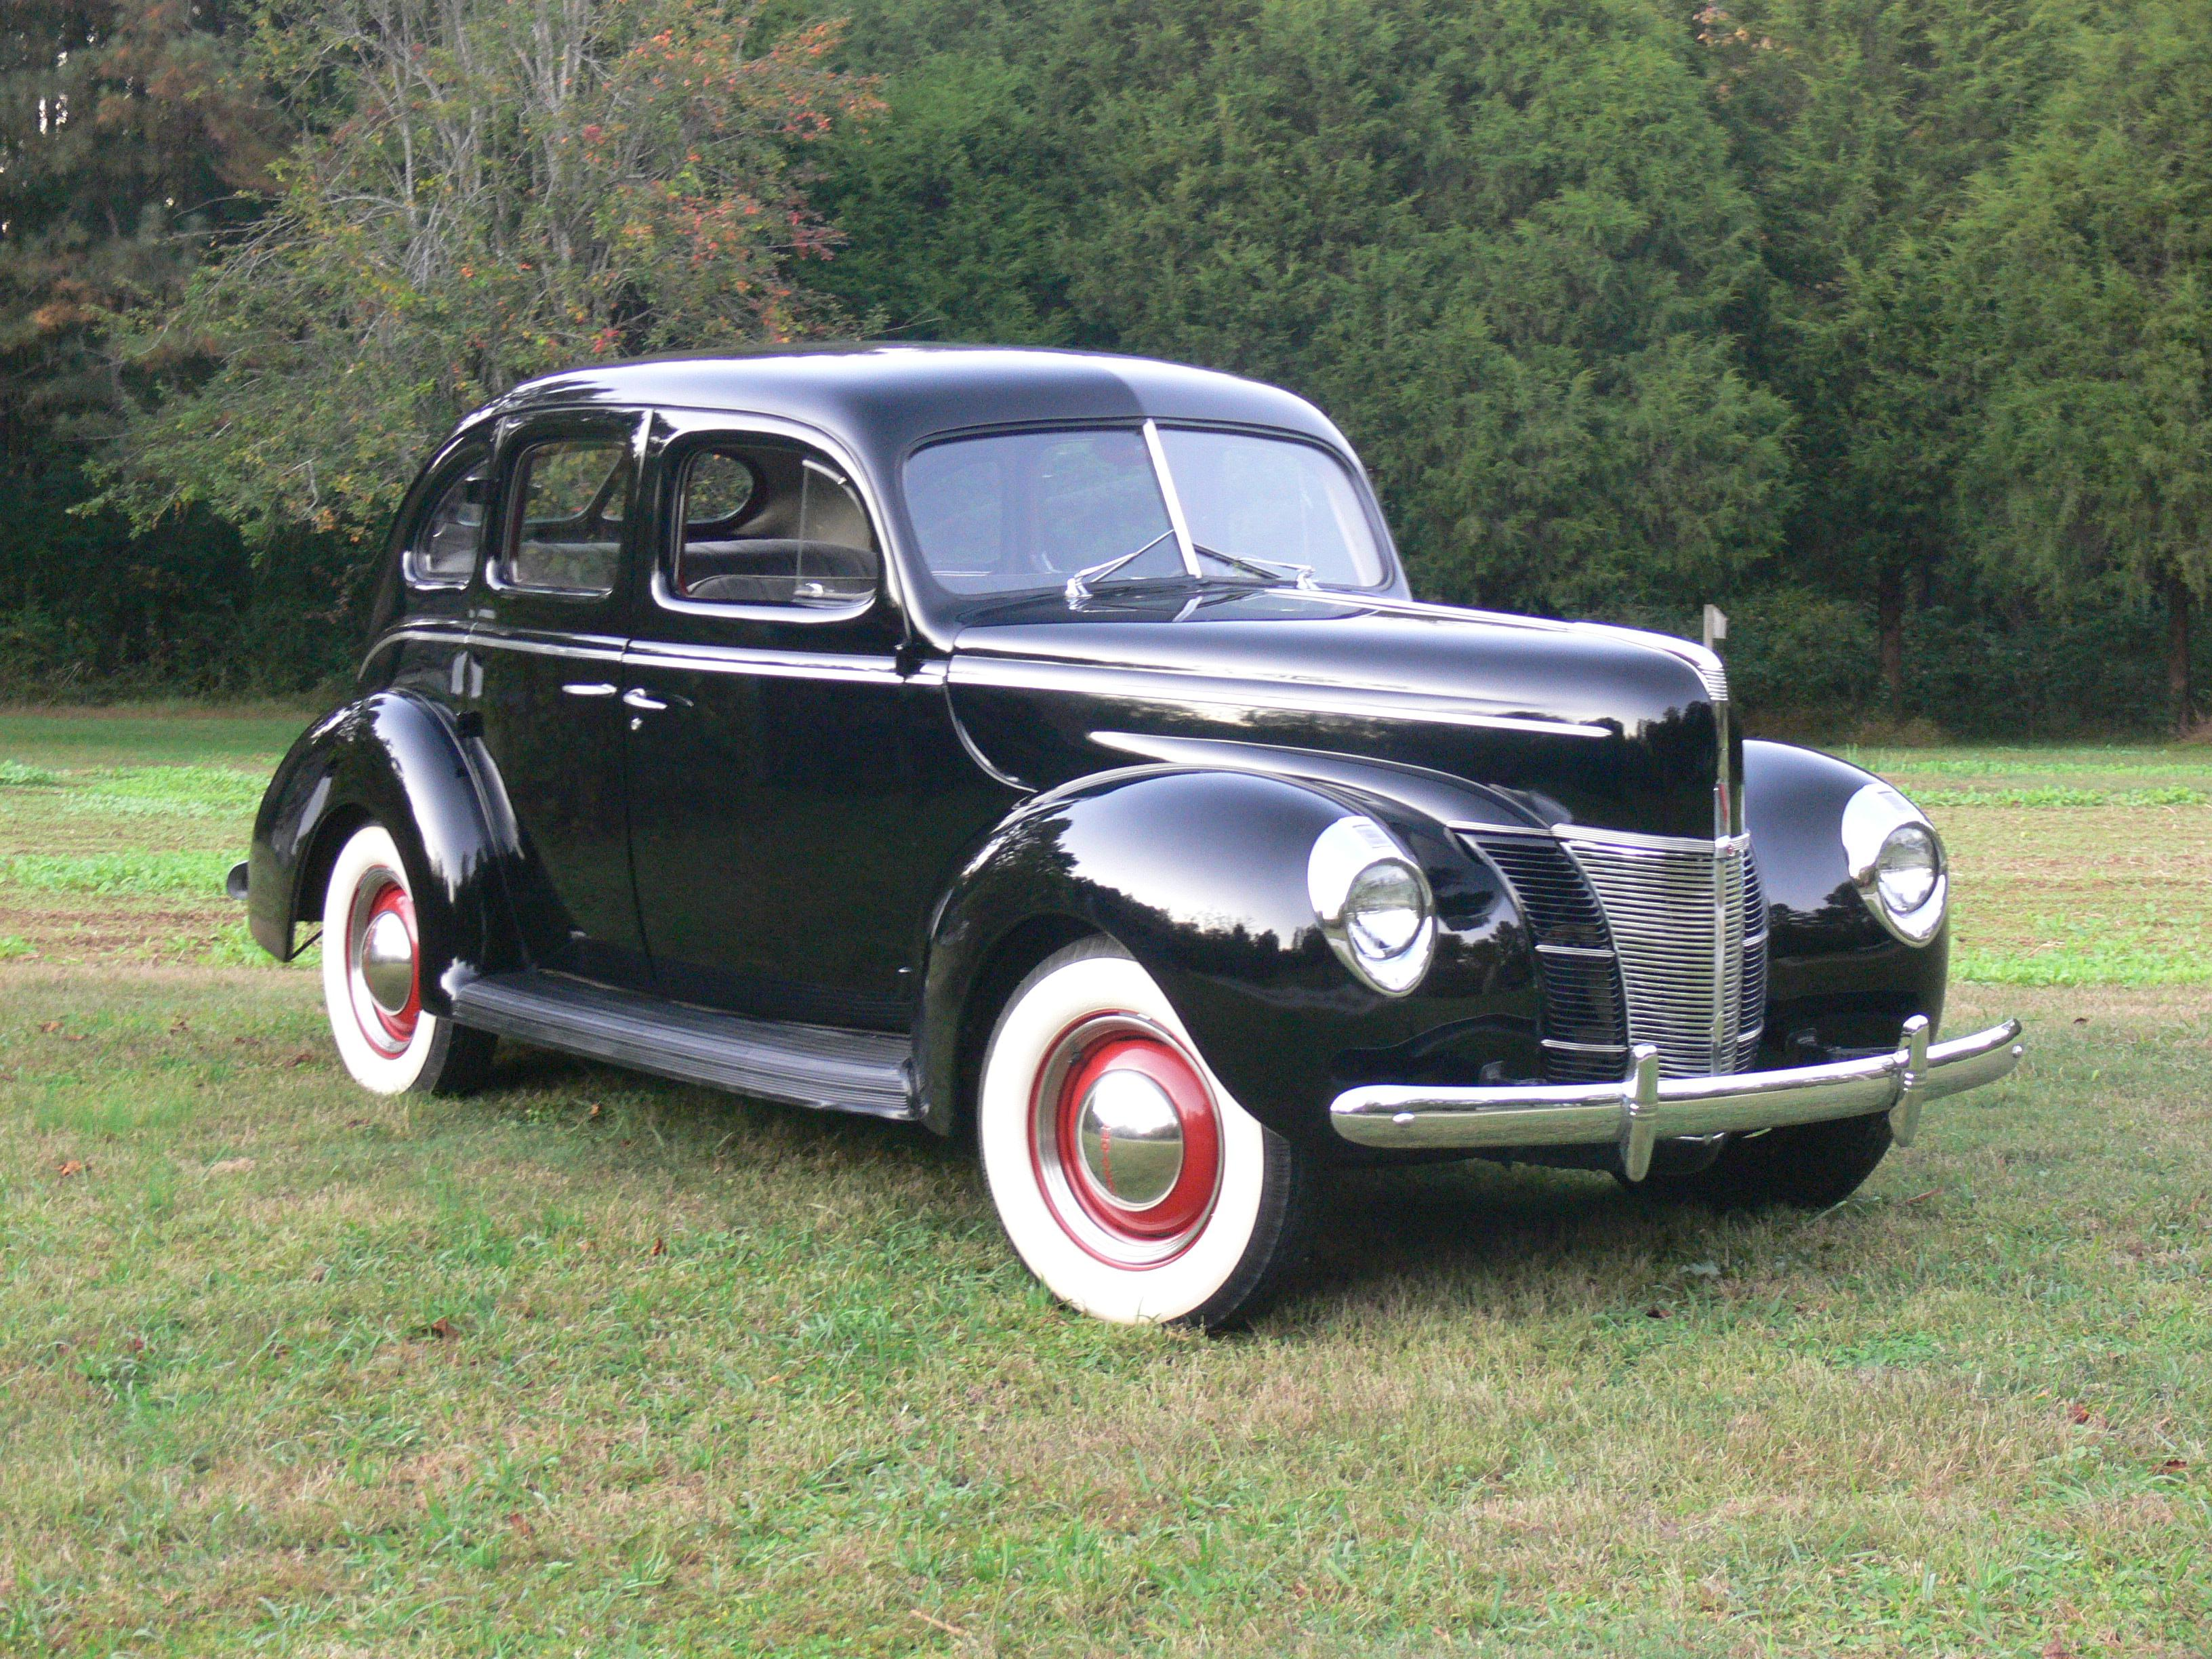 29mercedes 1940 Ford Deluxe